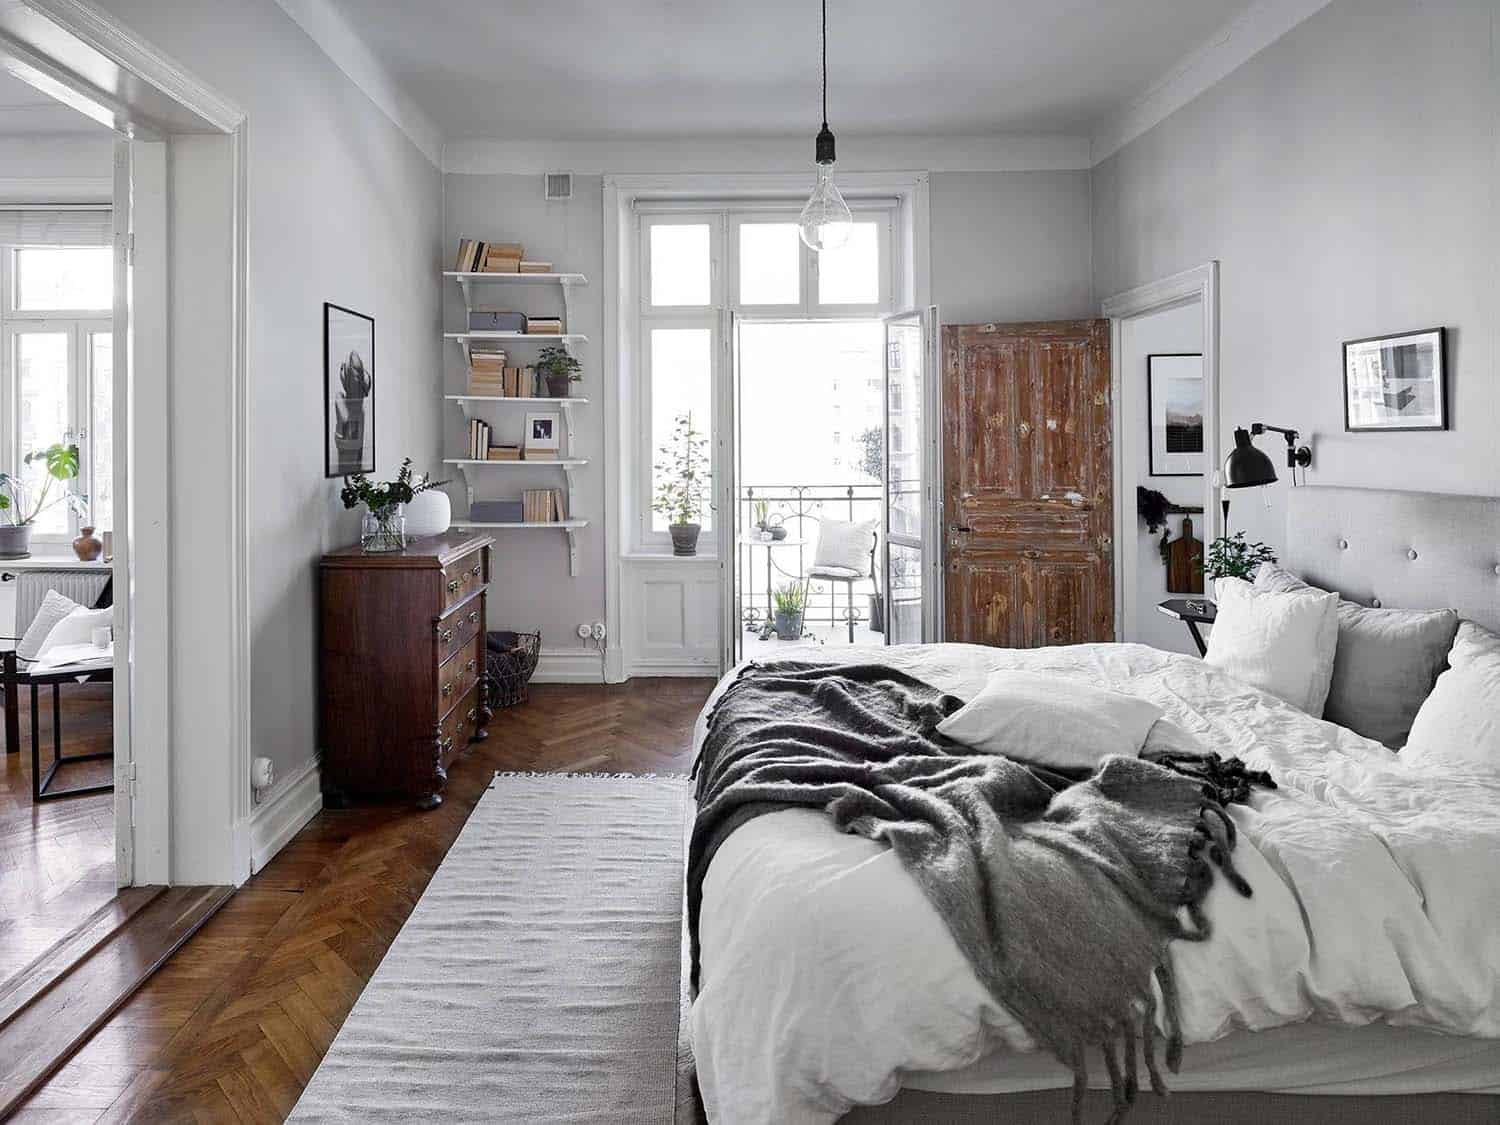 33 Ultra-cozy bedroom decorating ideas for winter warmth on Bedroom Decoration Ideas  id=72552